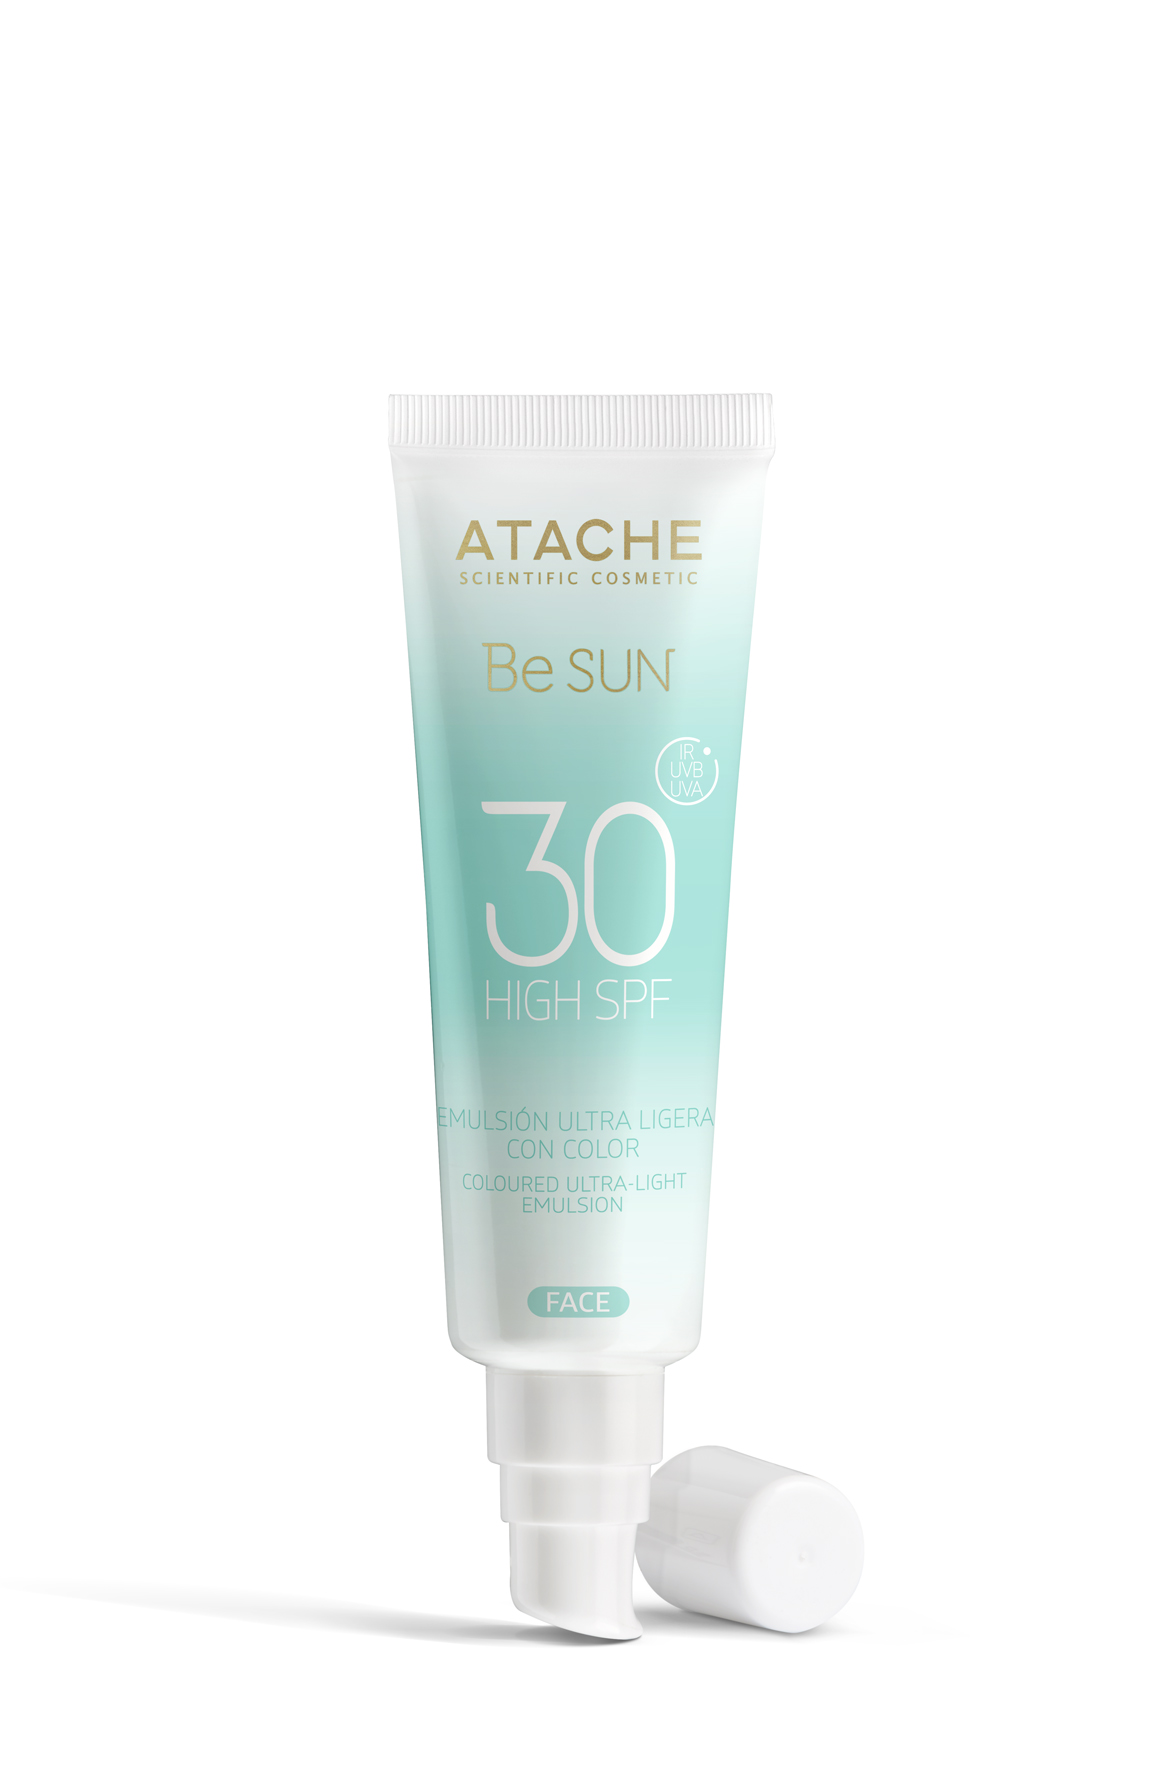 Atache SPF 30 Colored Ultra-Light Emulsion - AKCE slevva 20 %